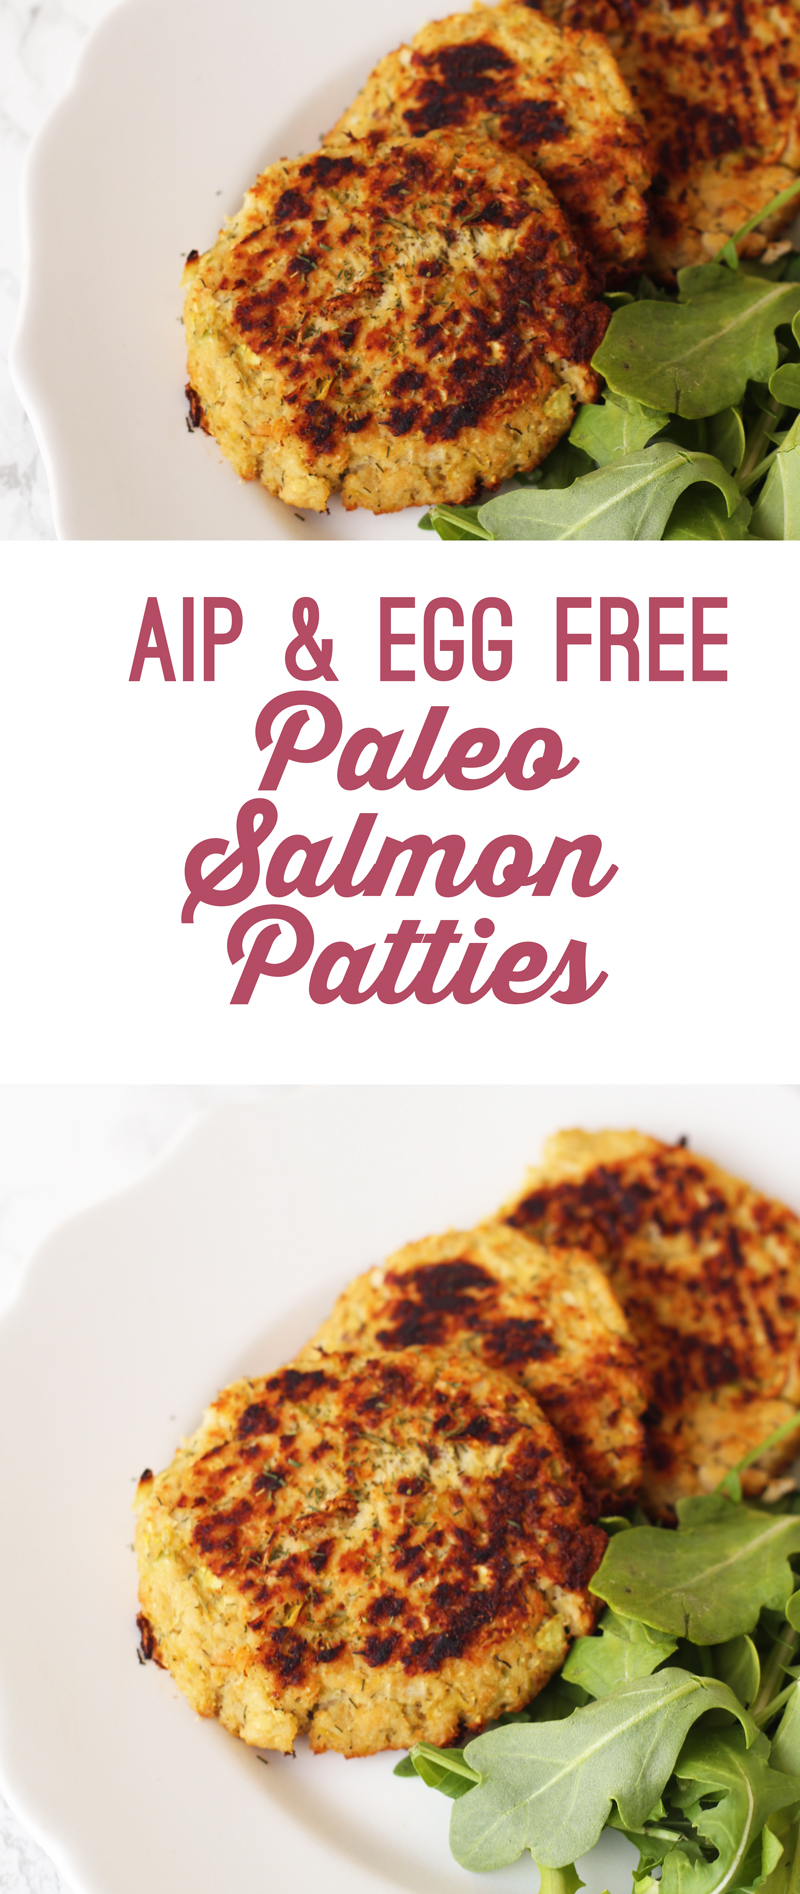 AIP Paleo Salmon Patties